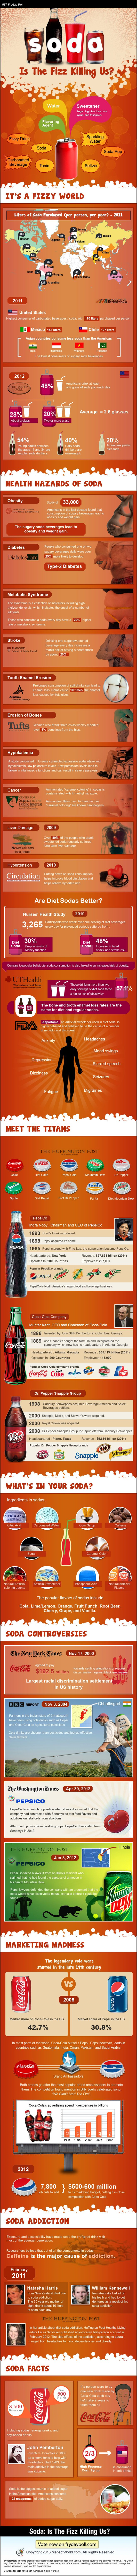 Soda: Is The Fizz Killing Us ? – Facts & Infographic    Find In-depth Review And Infographic About Soda And Its Health Hazards. Learn more about global (and US) soda pop consumption, about  corporations like PepsiCo, Coca Cola & Dr Pepper Snapple    http://yogeshsaroya.com/2013/02/soda-fizz-killing-us-facts-infographic/